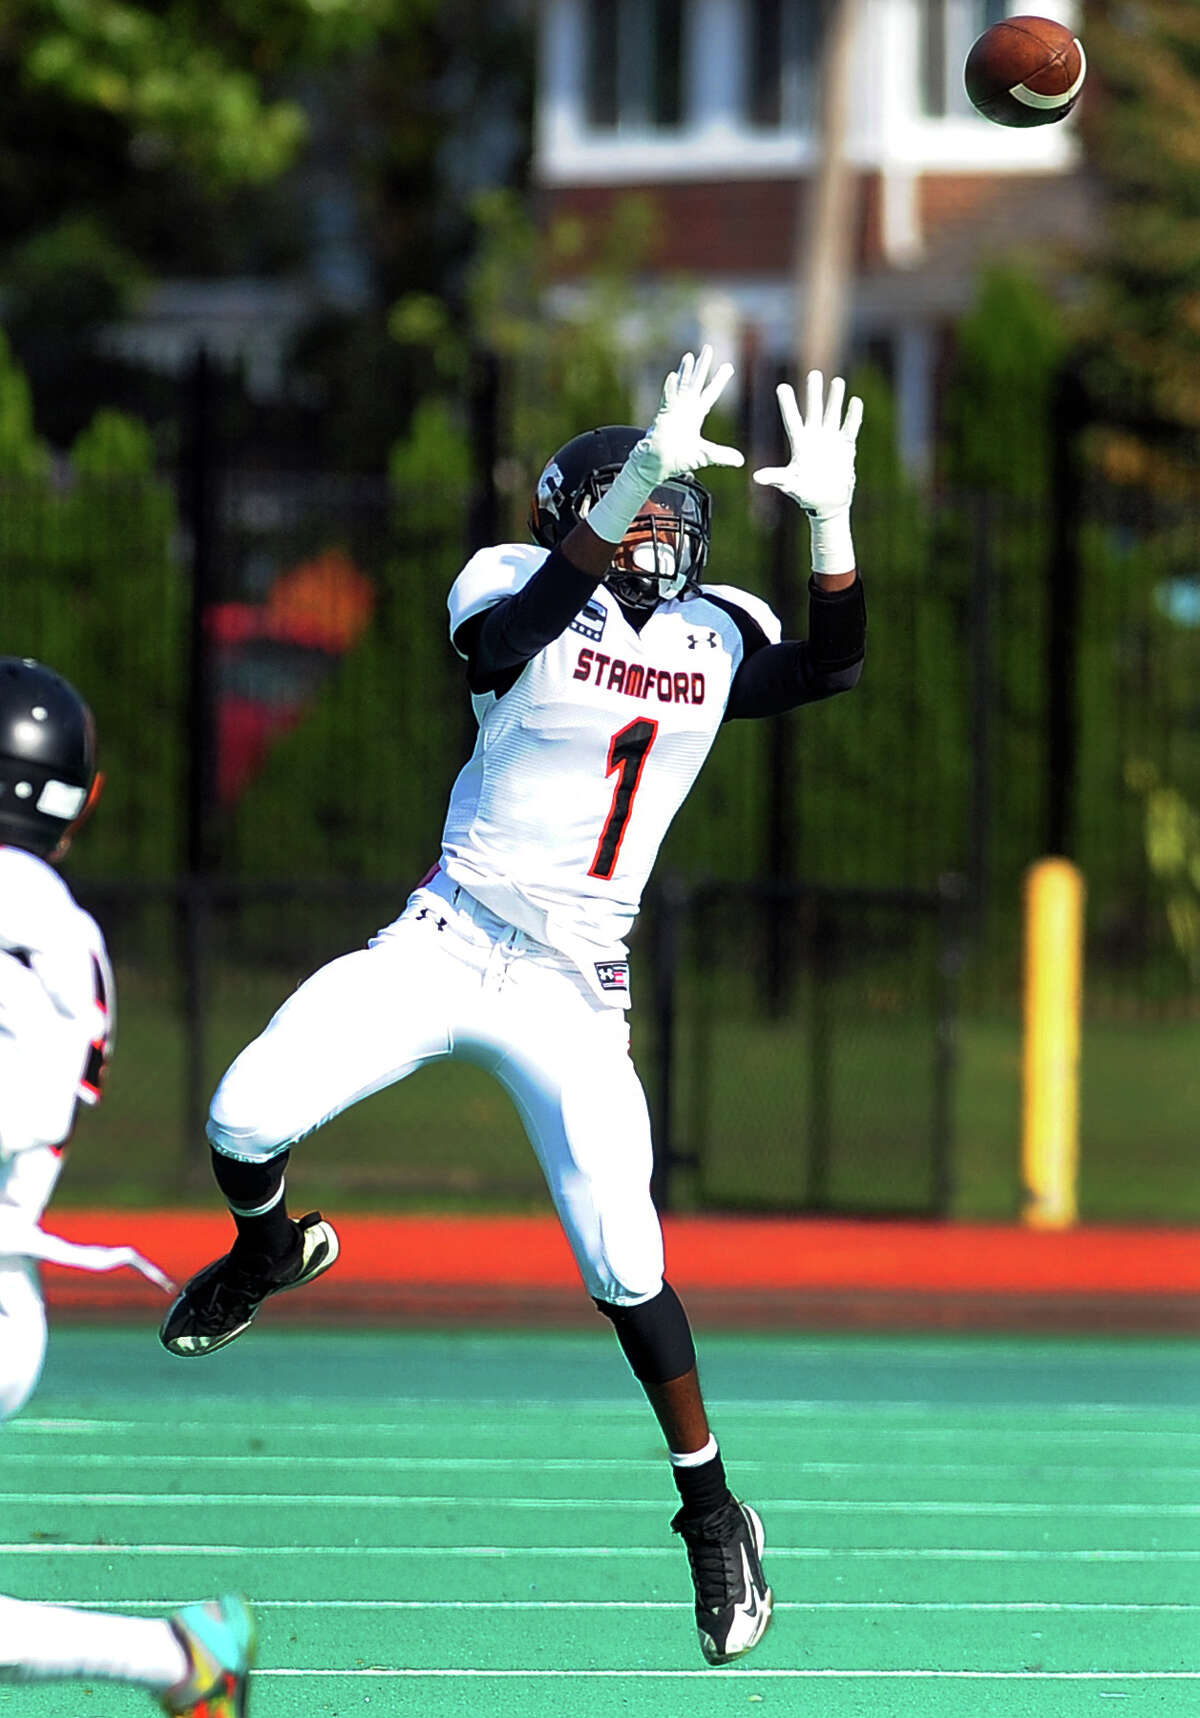 Stamford's Ziaire Mabry leaps to grab a pass, during football action against Bassick in Bridgeport, Conn. on Saturday October 25, 2014.